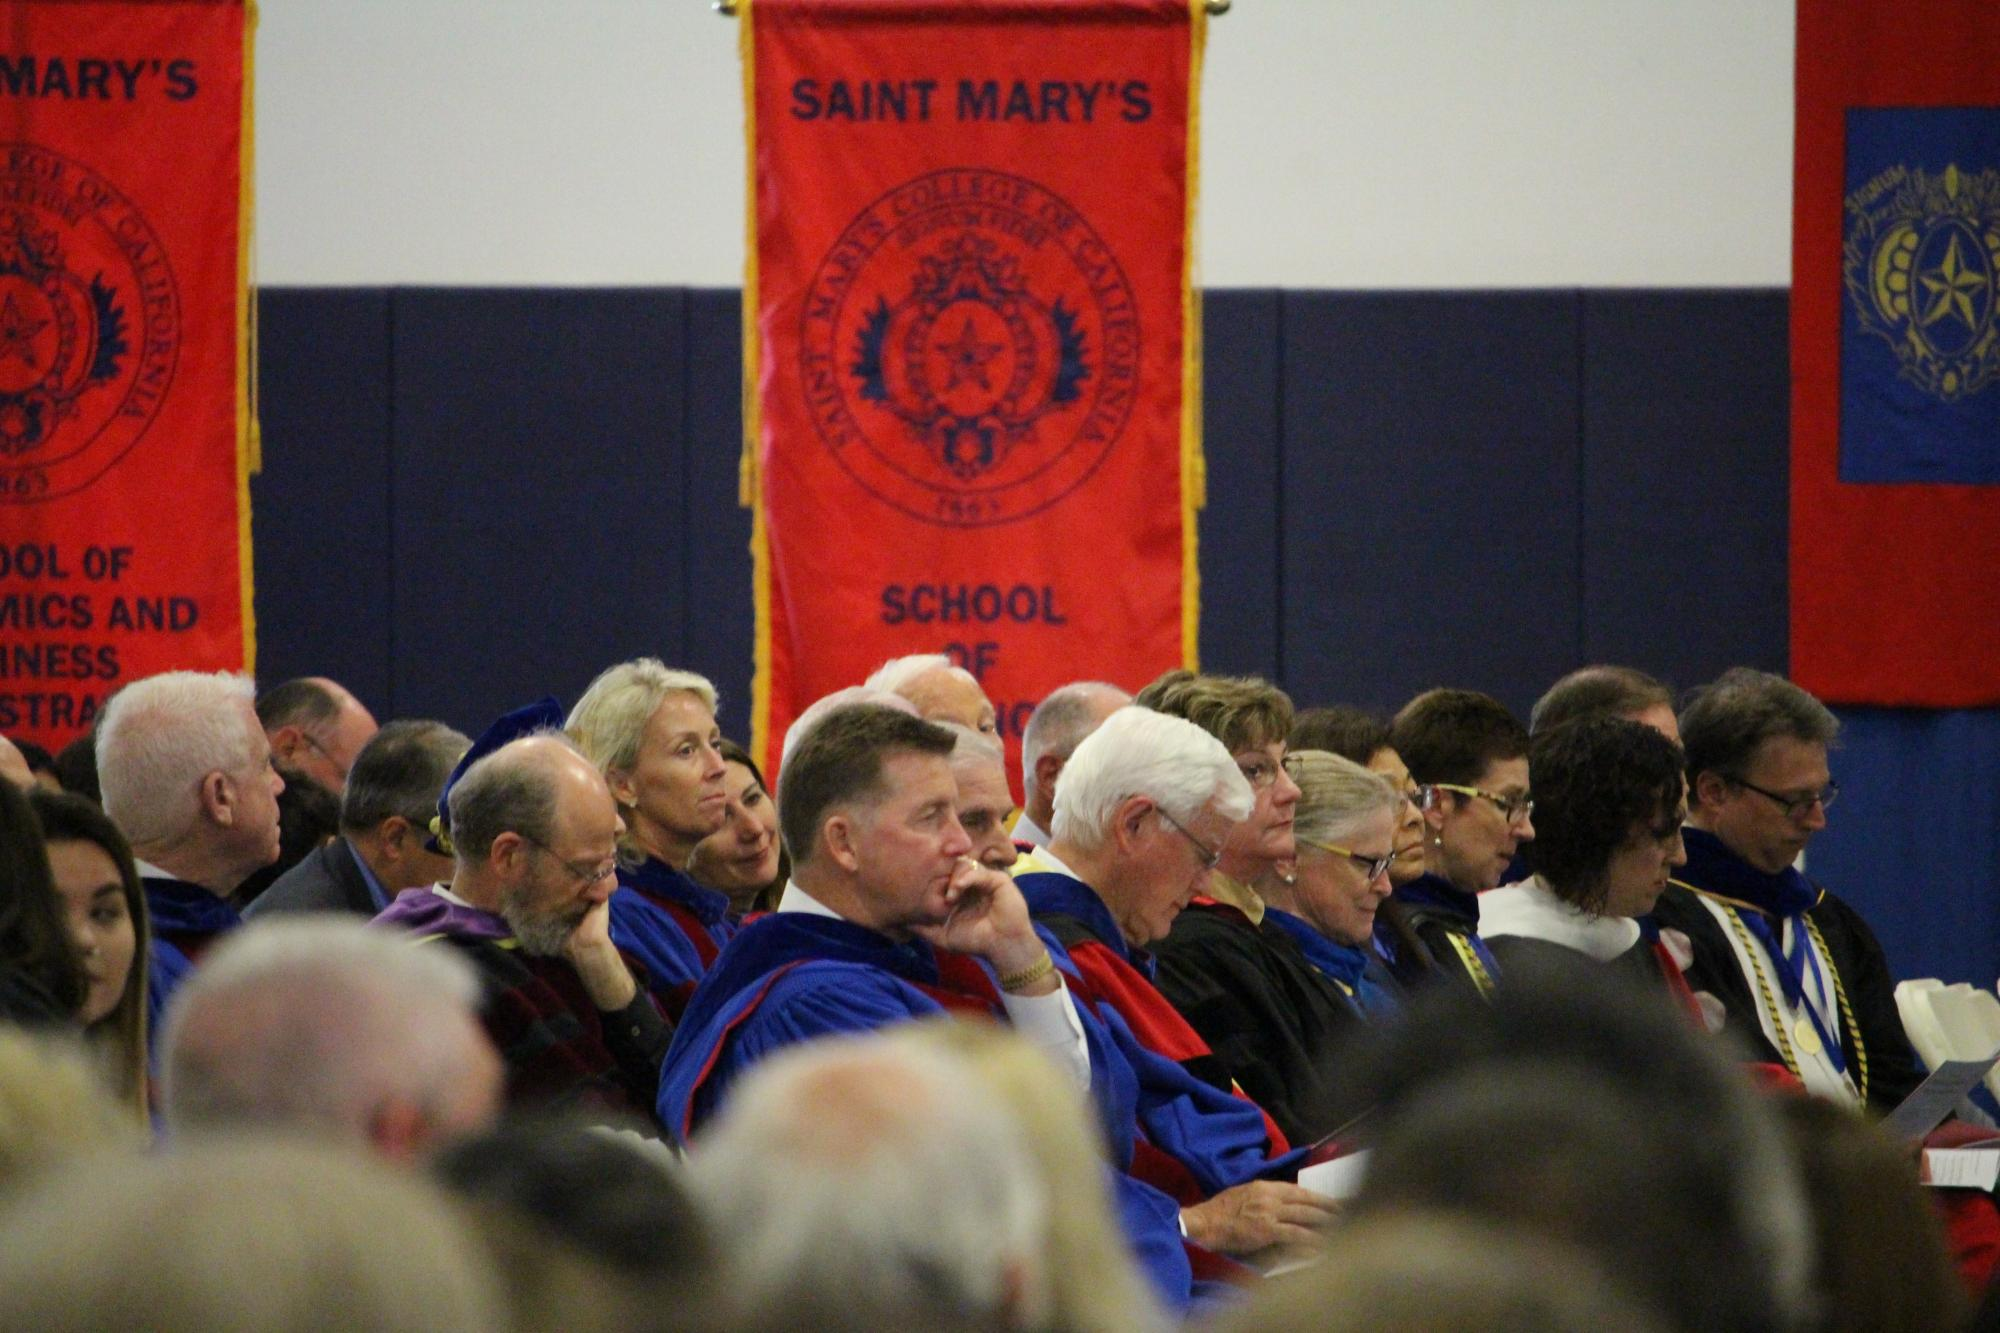 Rooted in the Catholic, Lasallian and Liberal Arts tradition at Saint Mary's, each year SMC community members gather on the eve of Commencement to give thanks, praise and reflect on the gifts given and received by students during their time at the College.